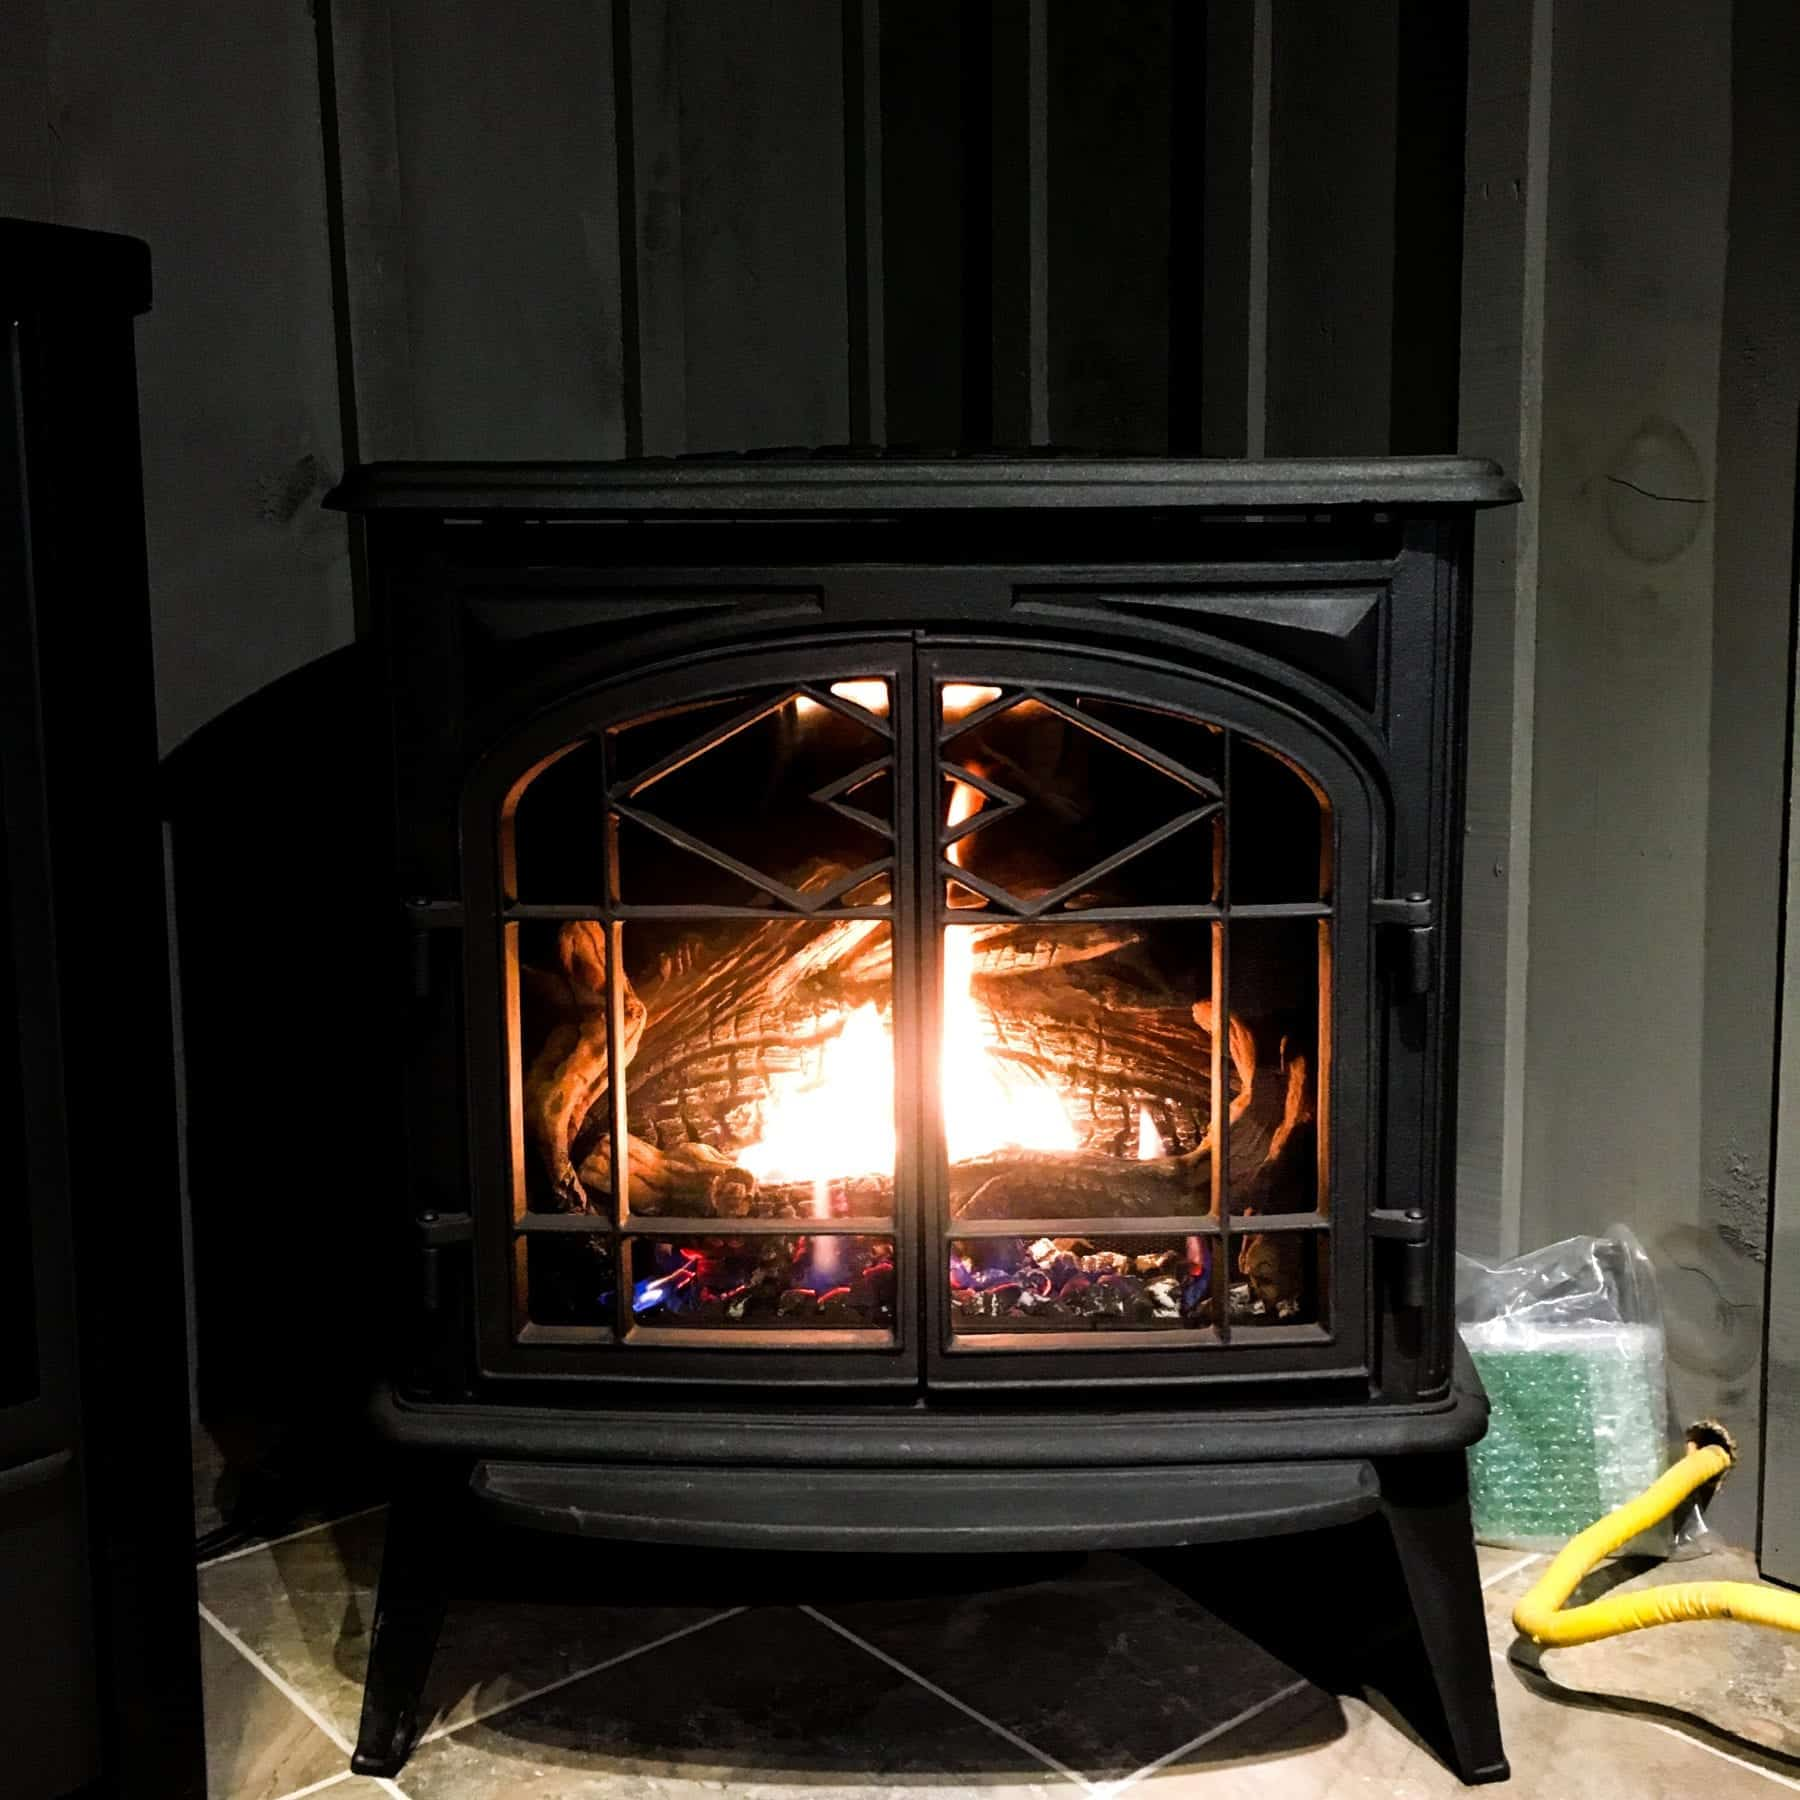 Pacific Energy Trenton Gas Stove Safe Home Fireplace